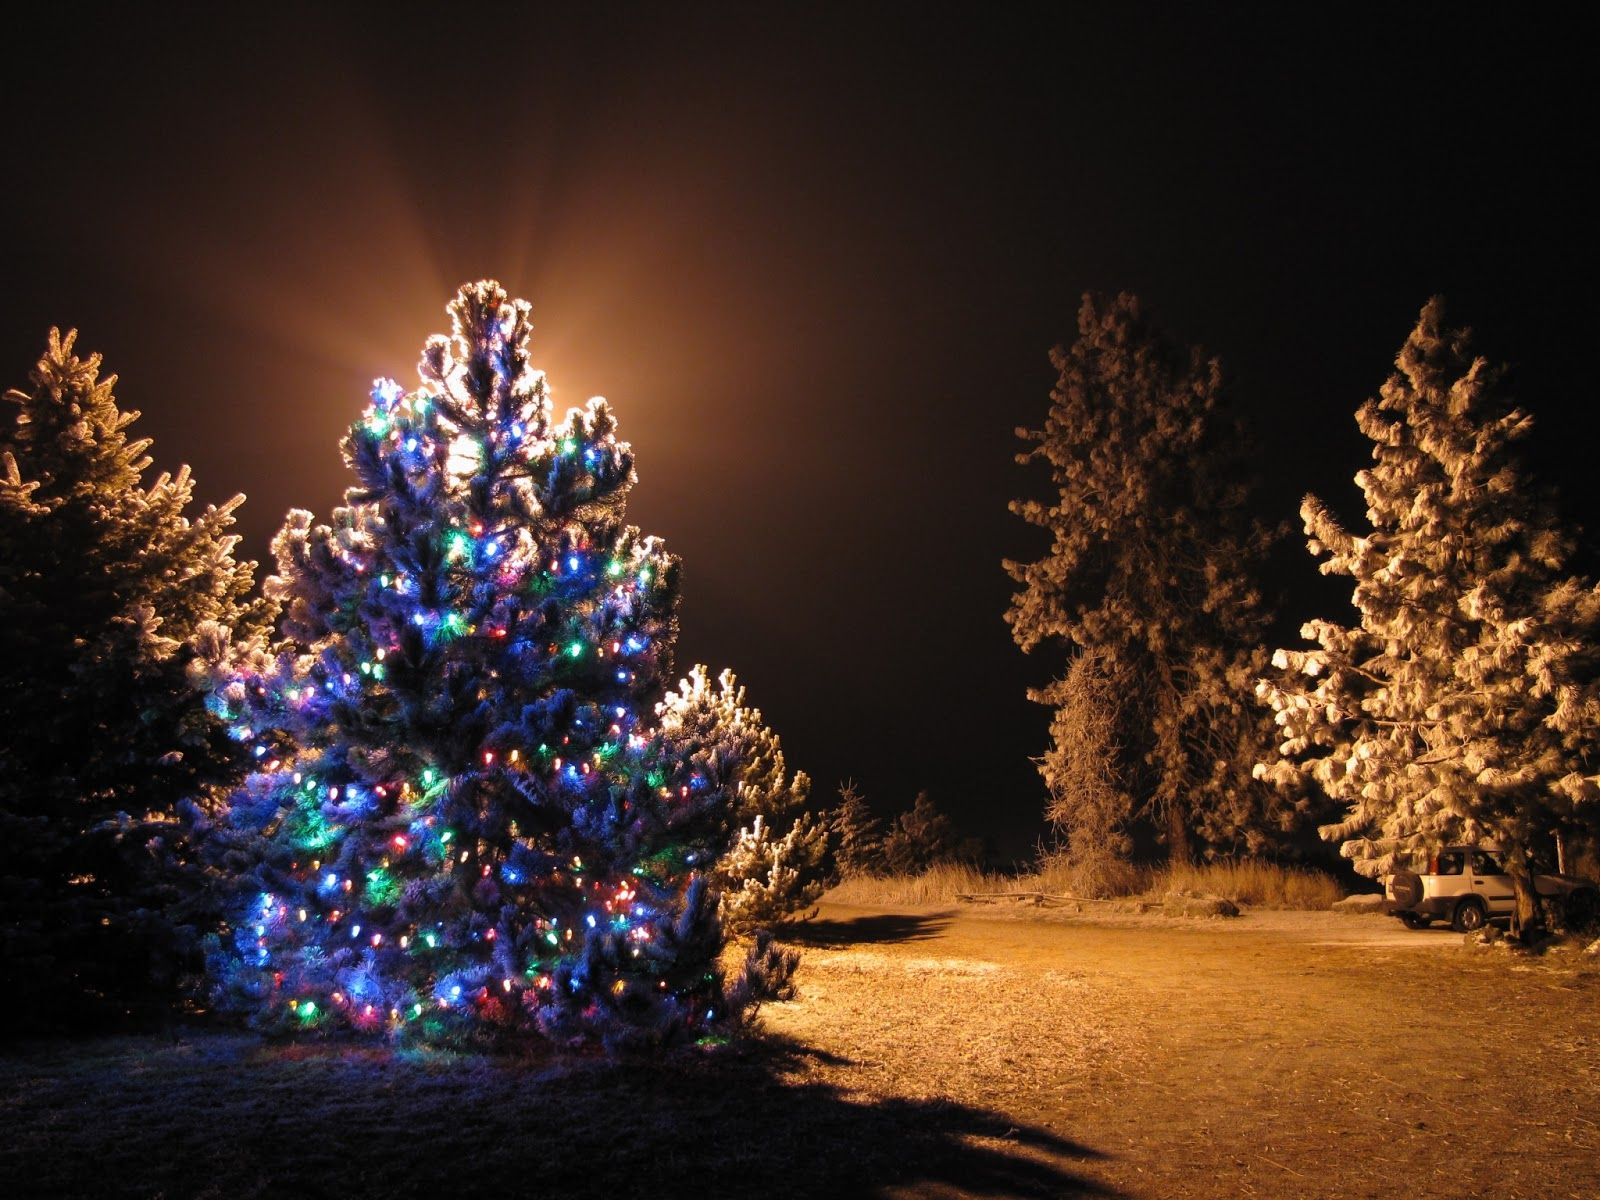 This post contains some of the best collection of outdoor this post contains some of the best collection of outdoor christmas tree images mozeypictures